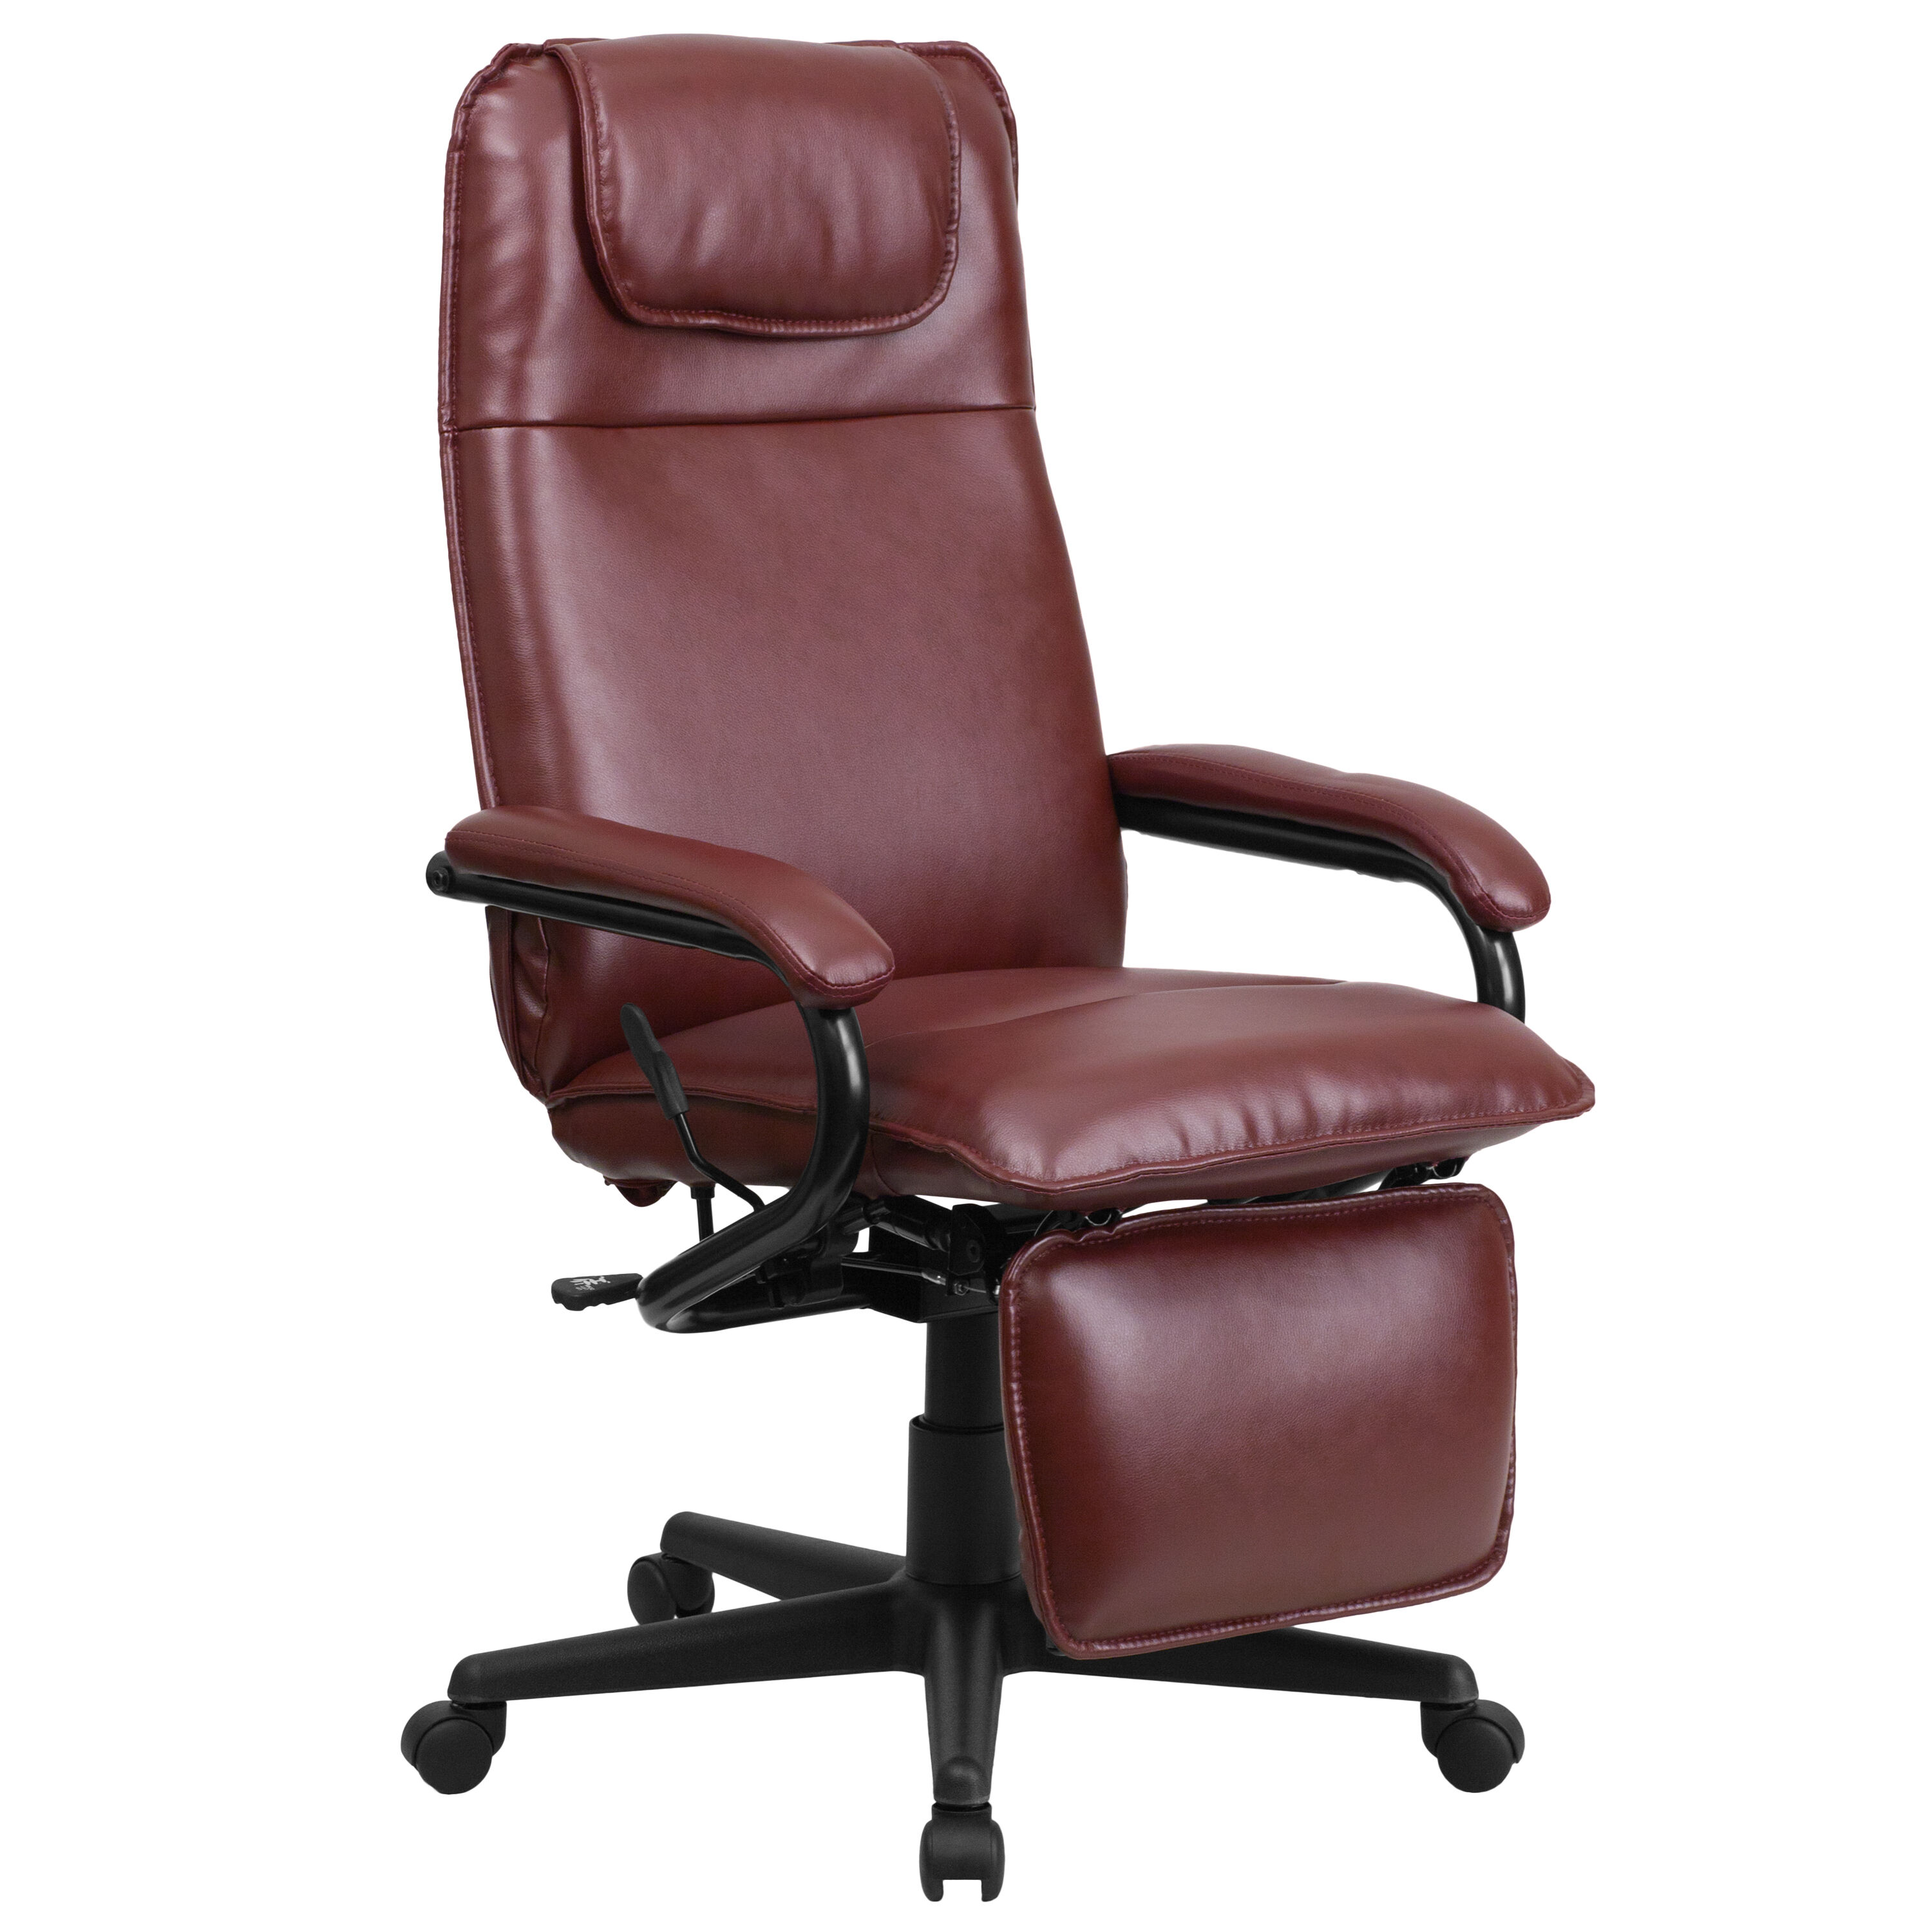 ... Our High Back Burgundy Leather Executive Reclining Swivel Chair With  Arms Is On Sale Now.